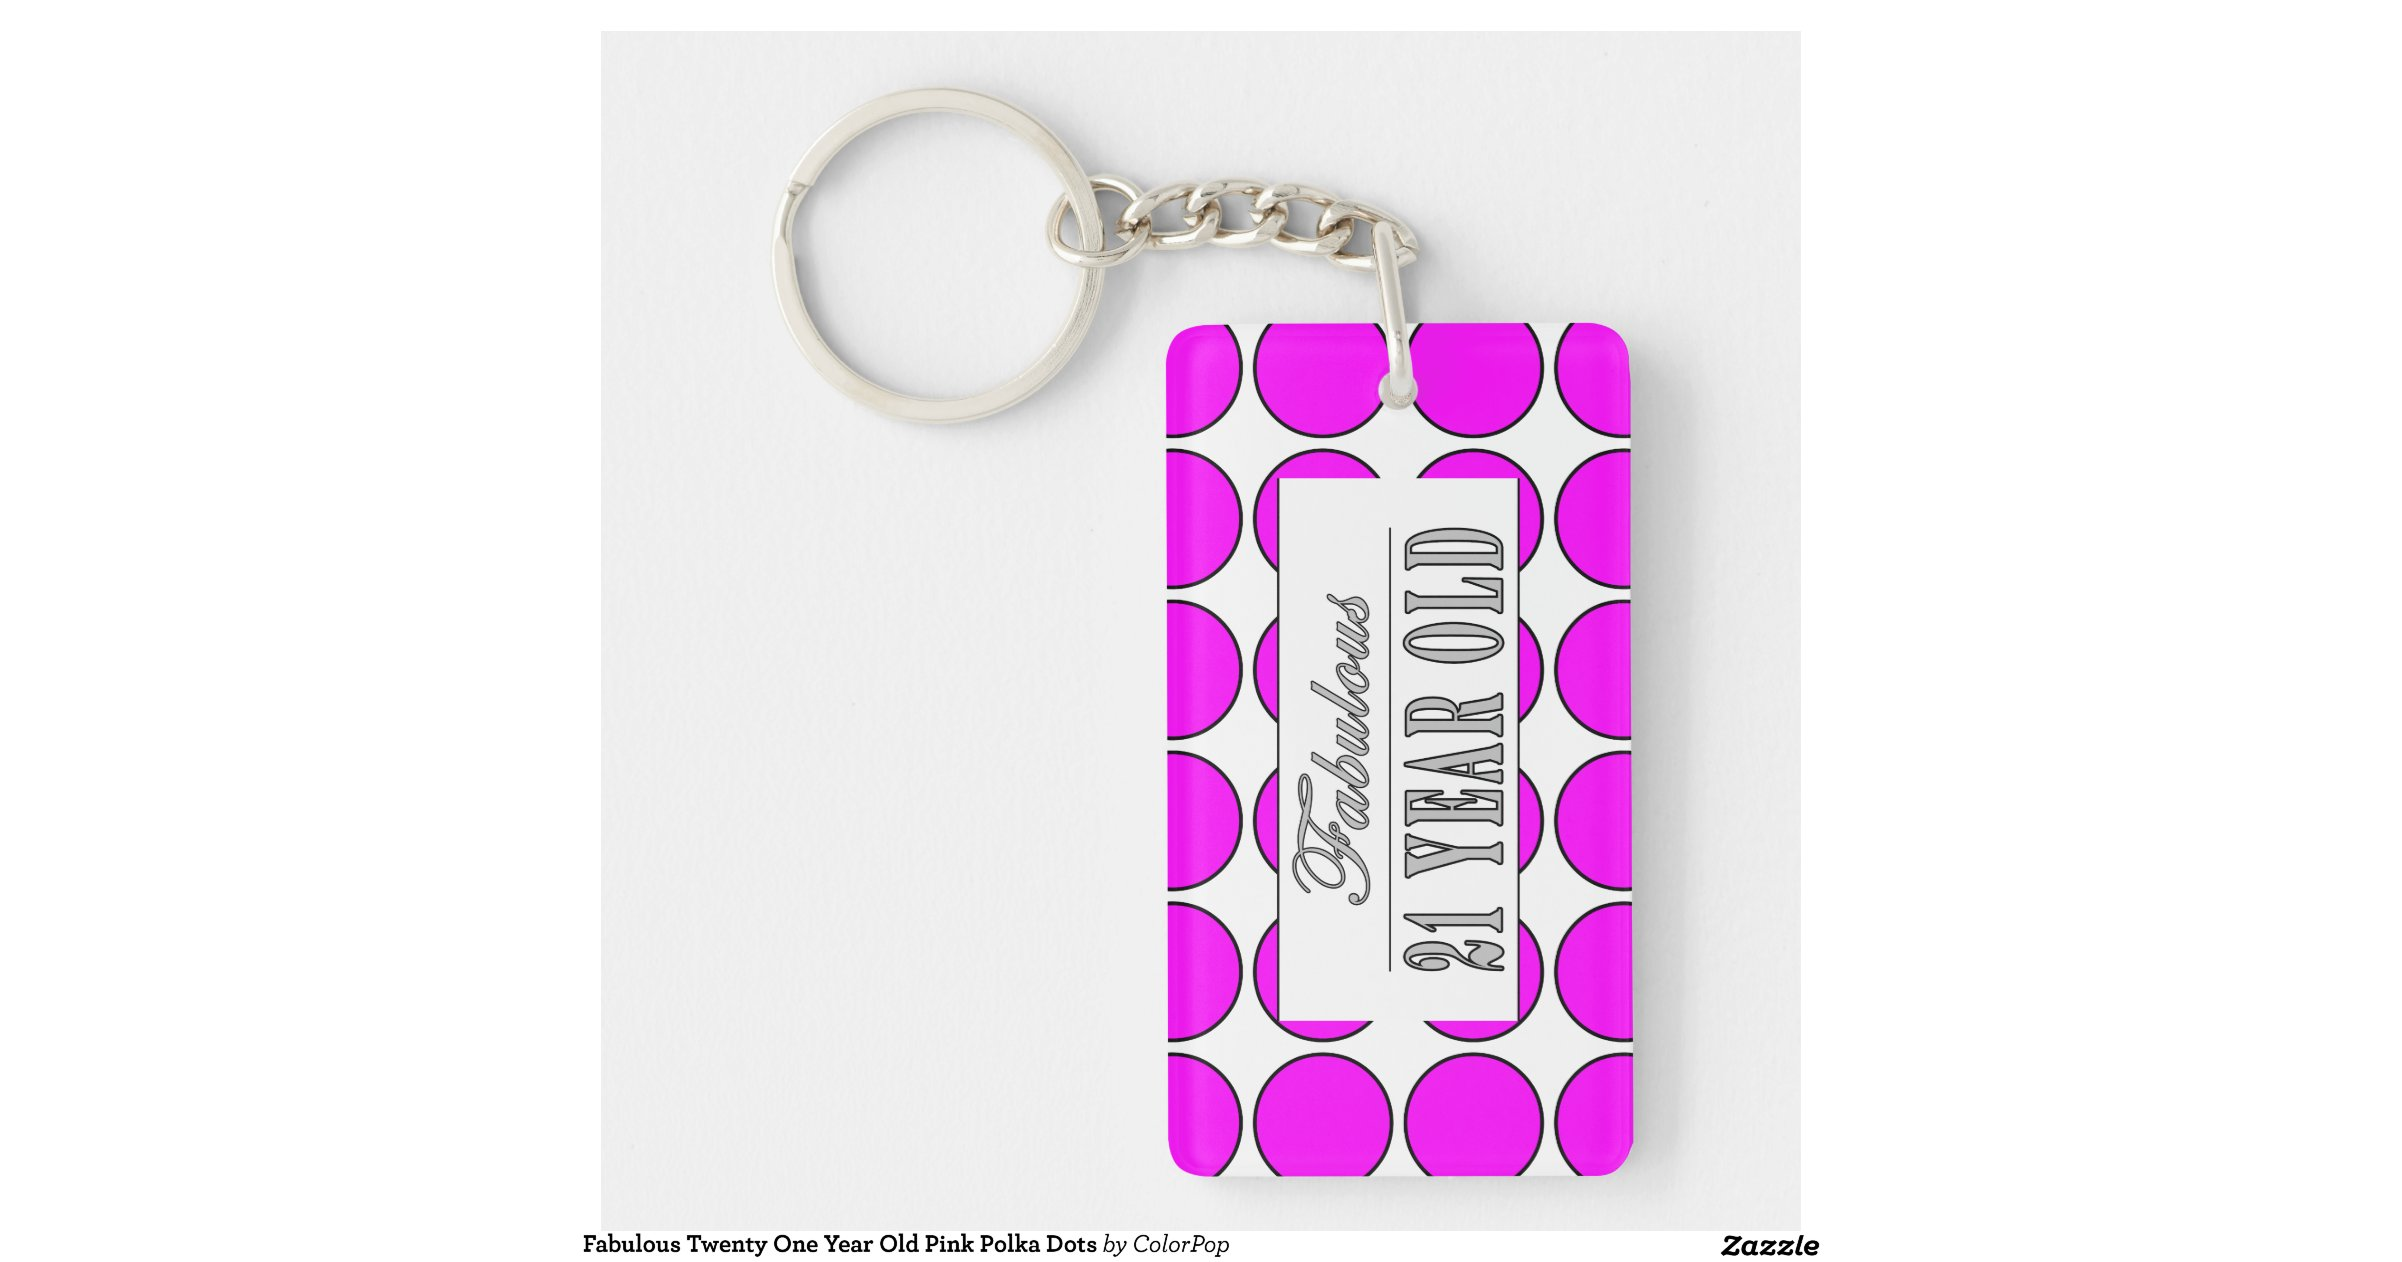 Fabulous Twenty One Year Old Pink Polka Dots Single-Sided